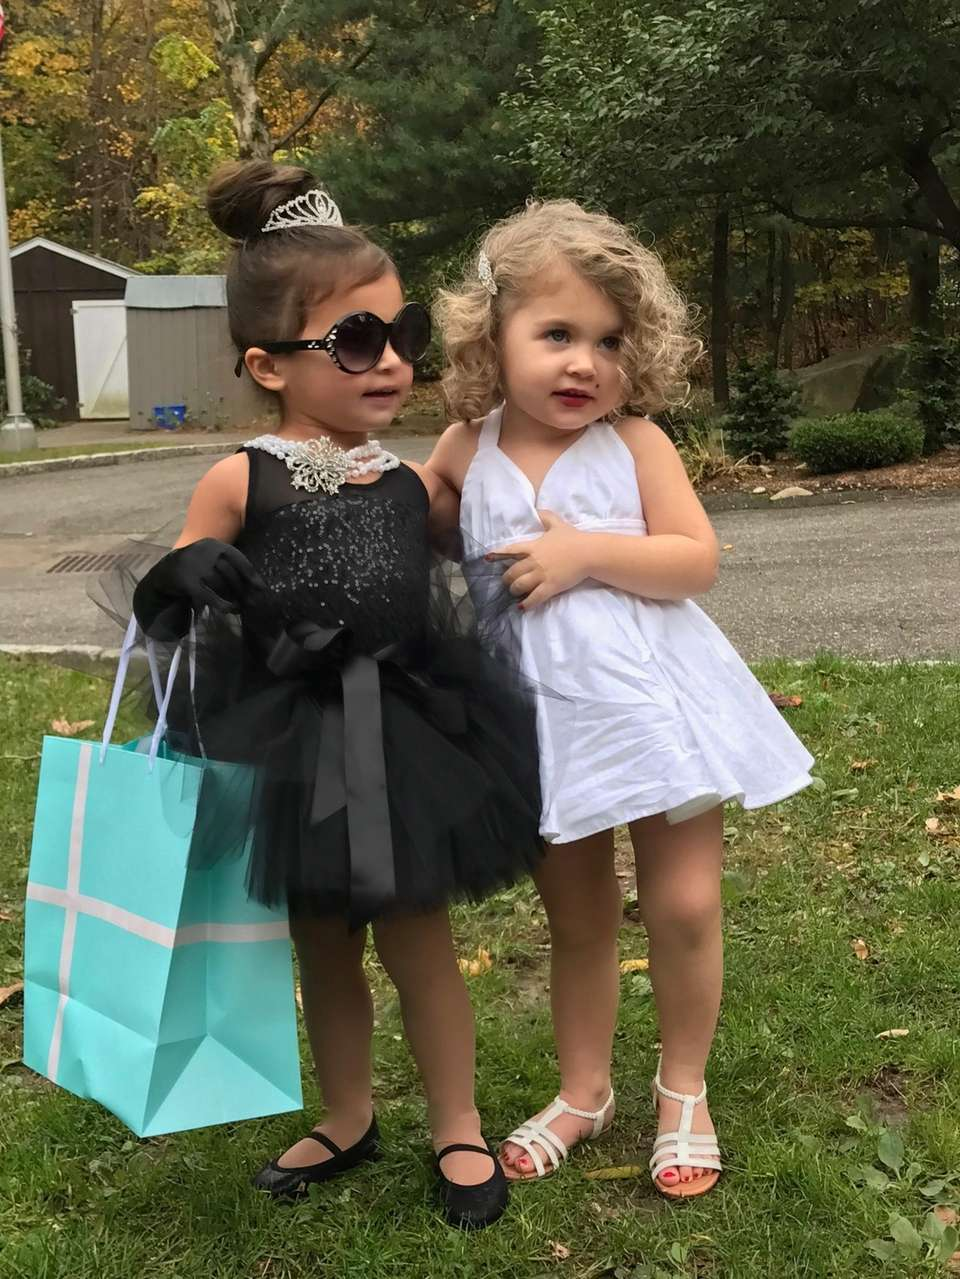 Best Friends Ava Ahlstrand & Mckenna Cash dressed